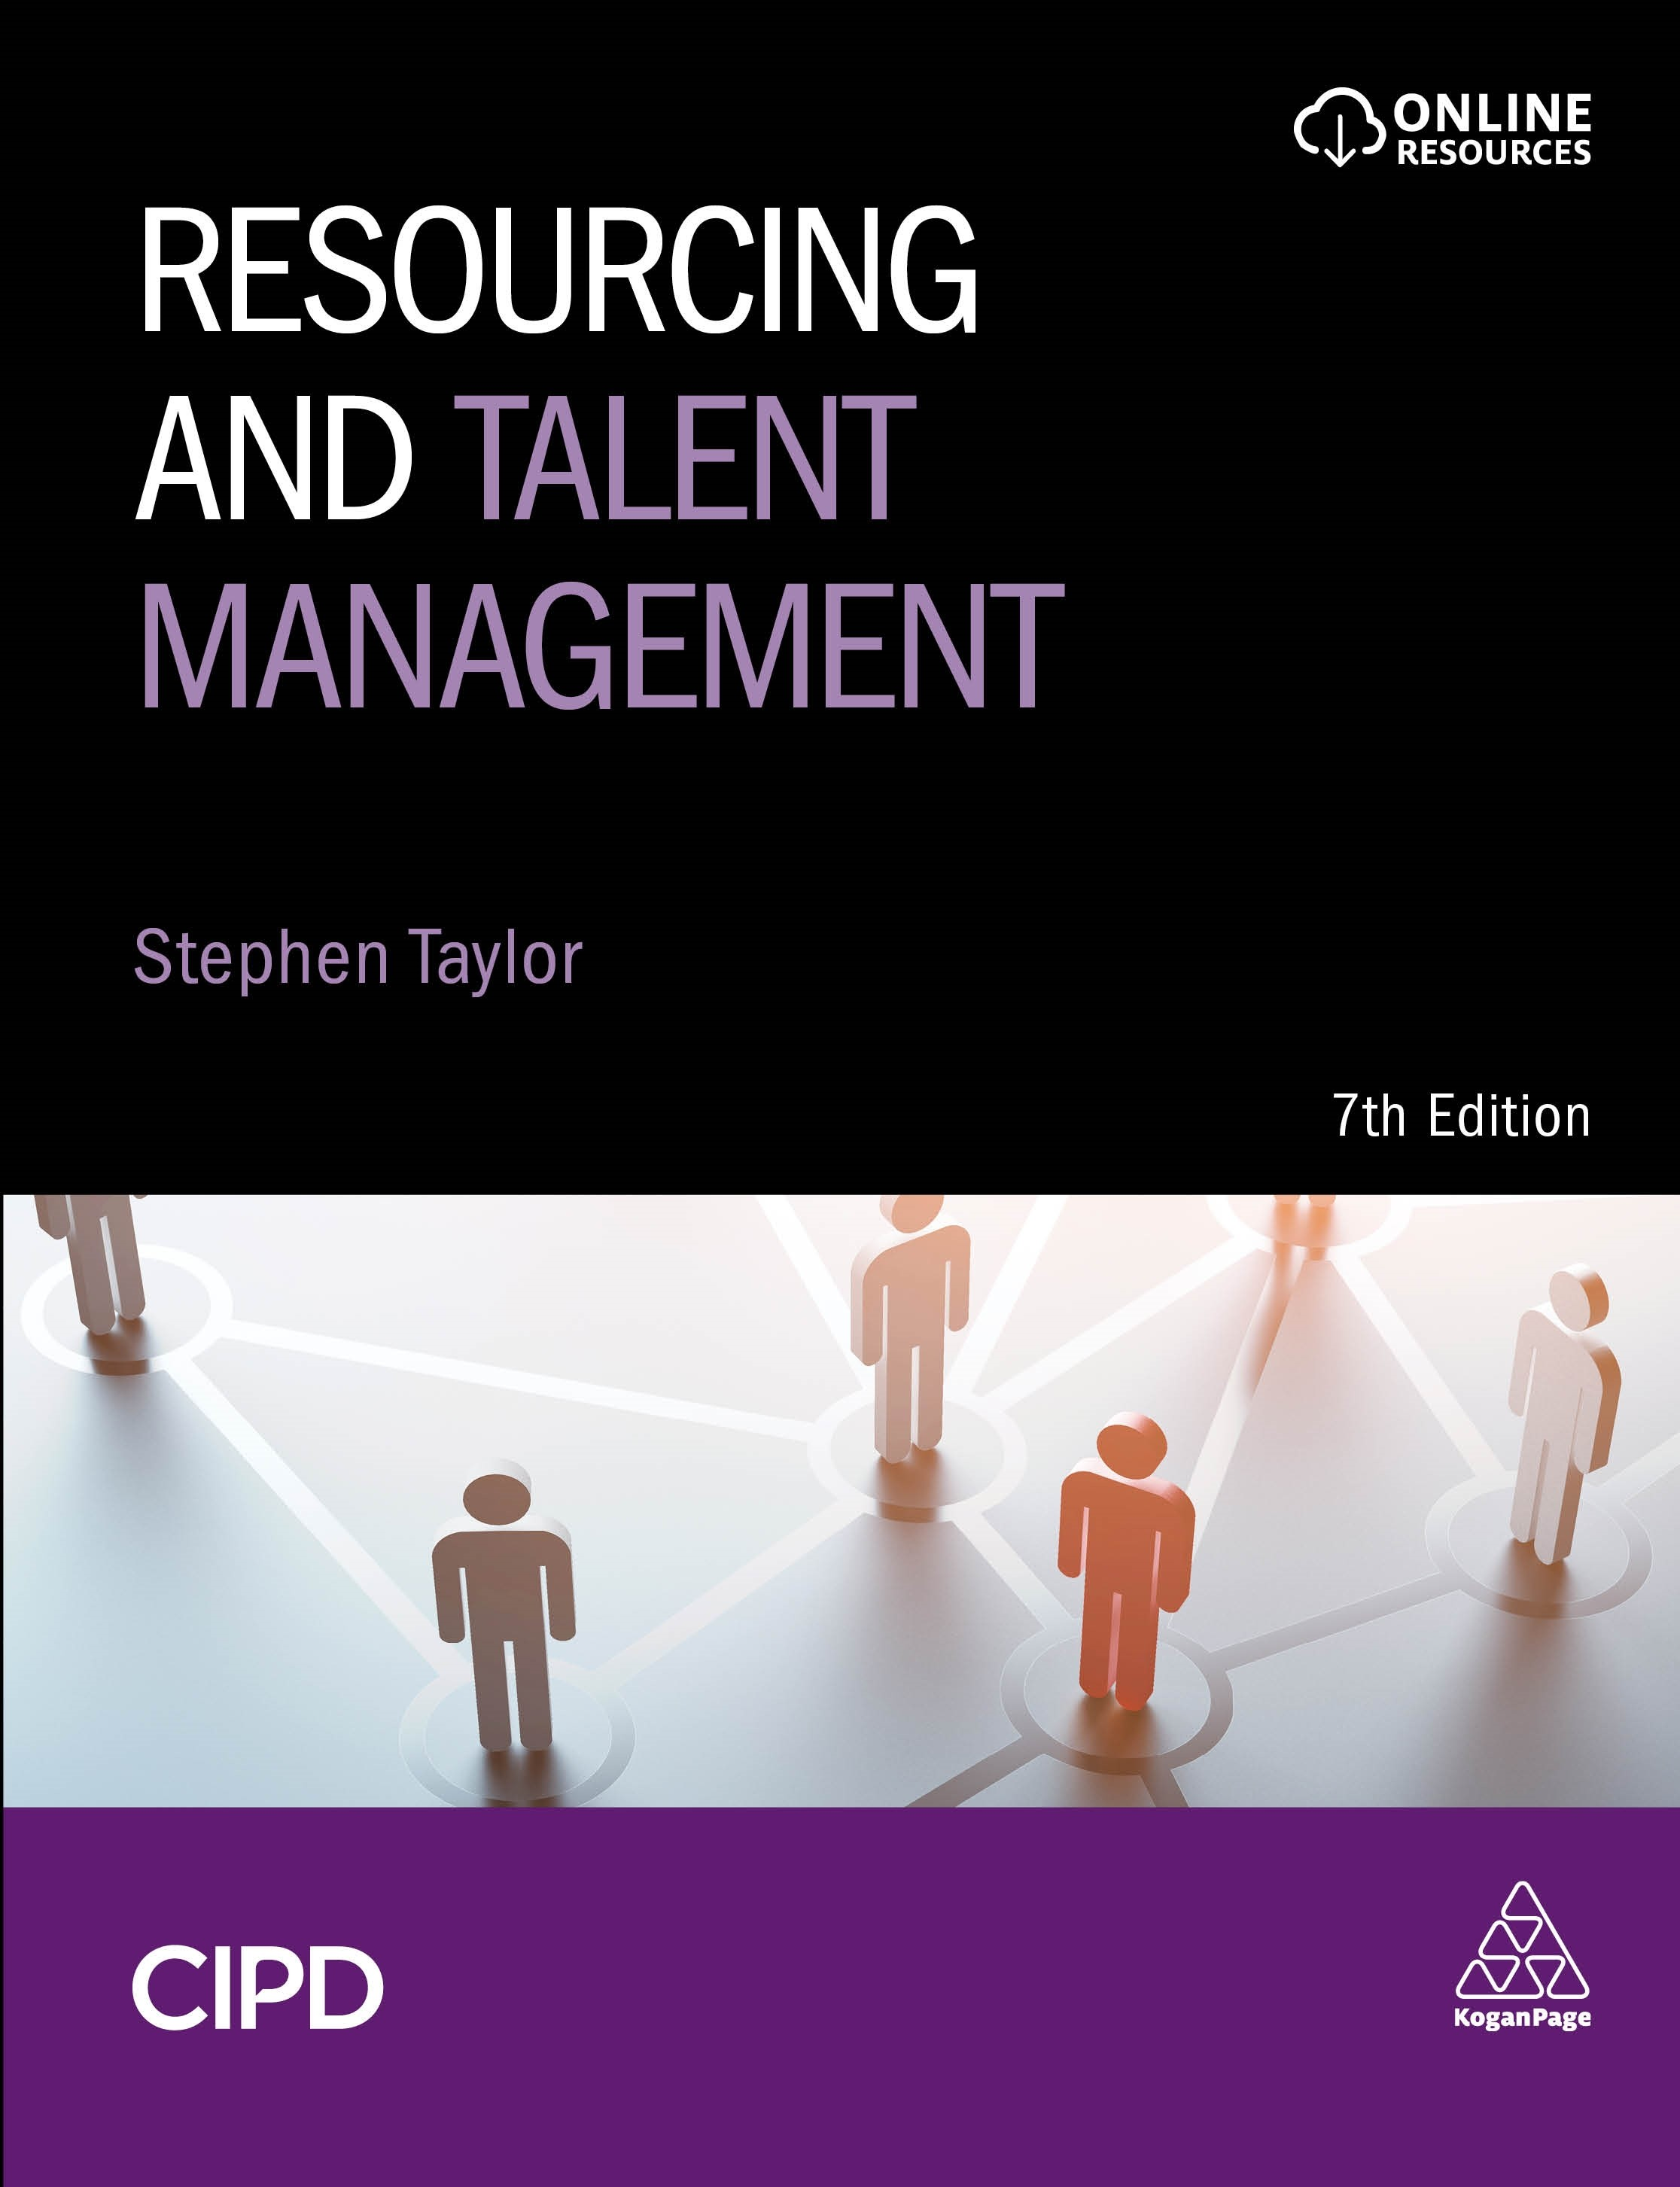 Resourcing and Talent Management | Taylor, 2018 | eBook (Cover)